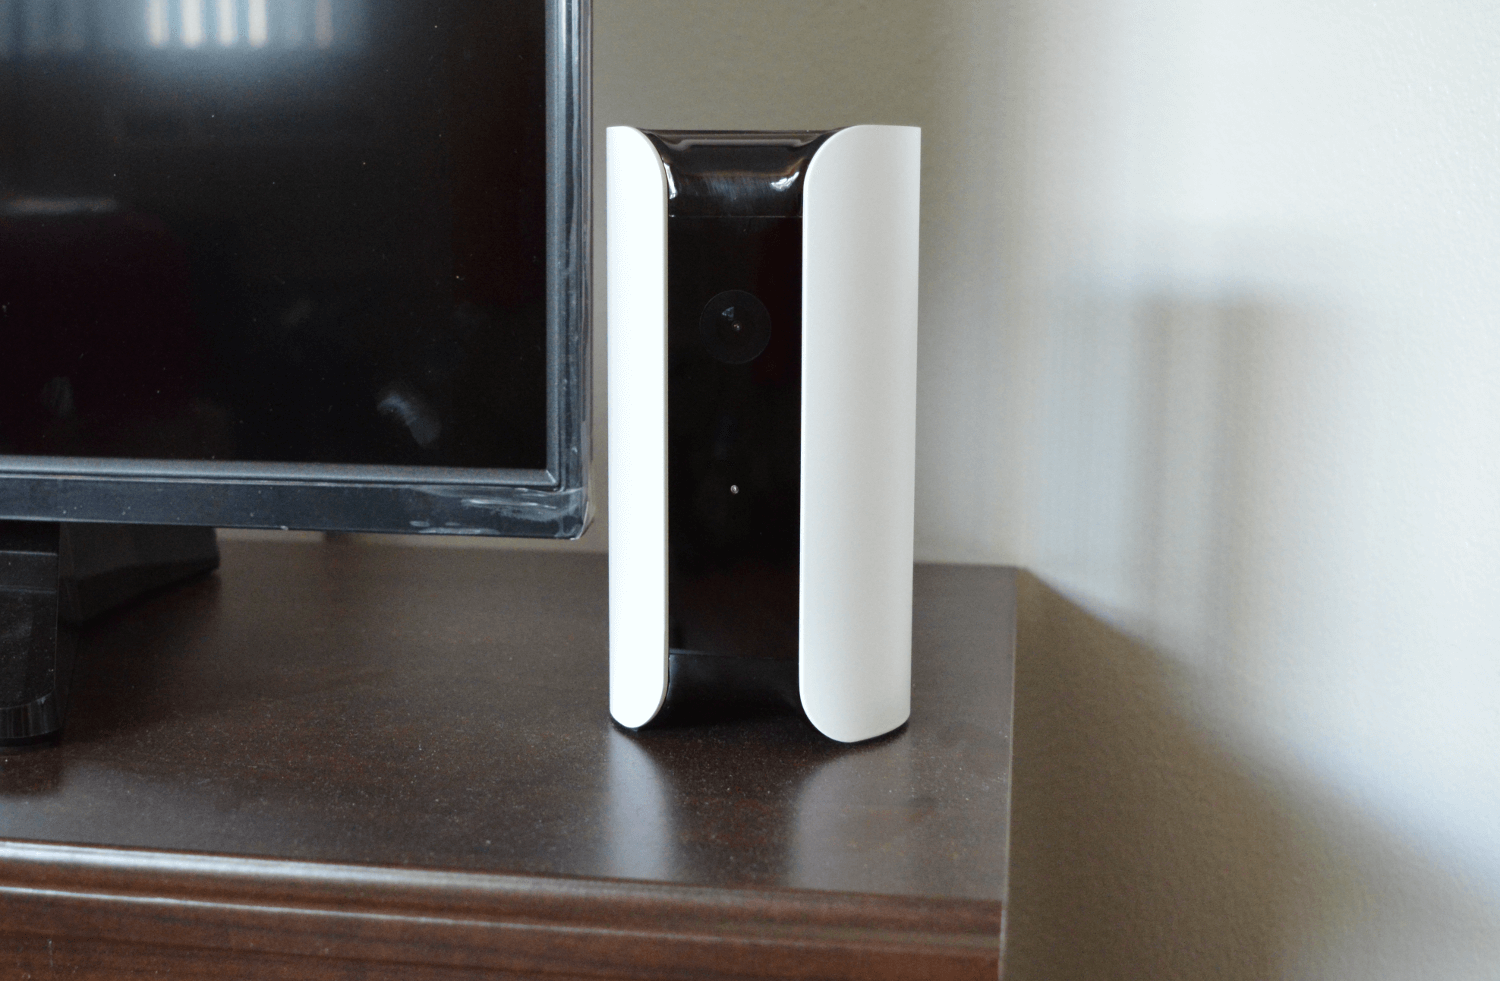 Canary Is A Smart Security Camera That Keeps Watch When You're Away